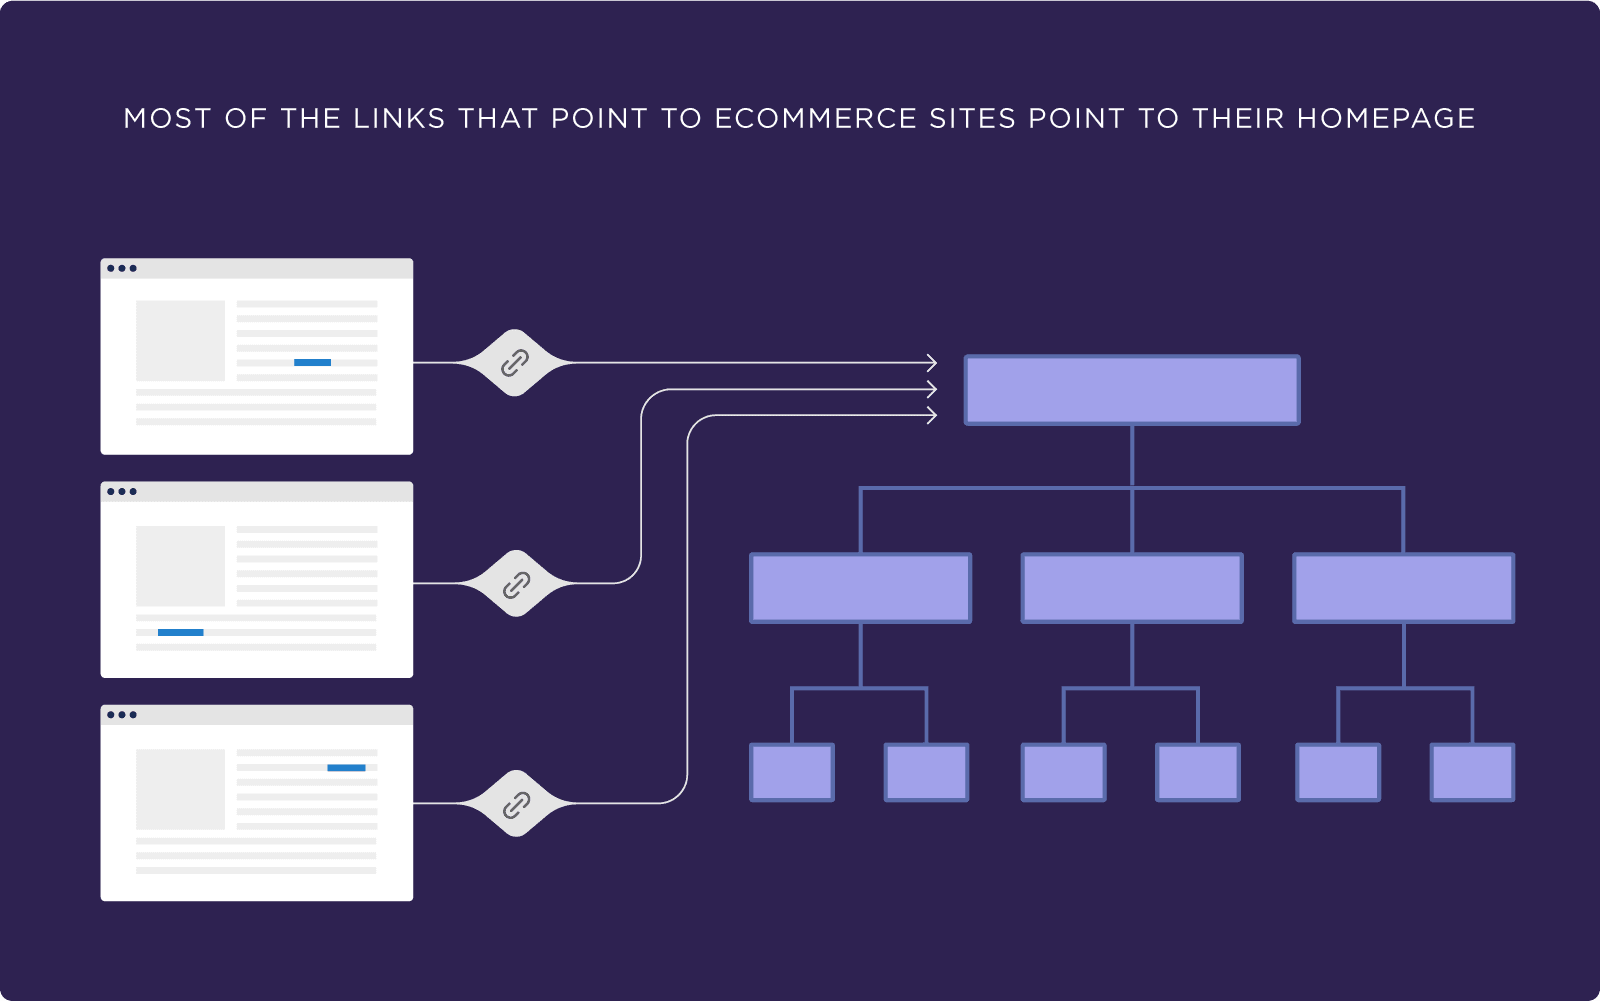 Most of the links that point to ecommerce sites point to their homepage